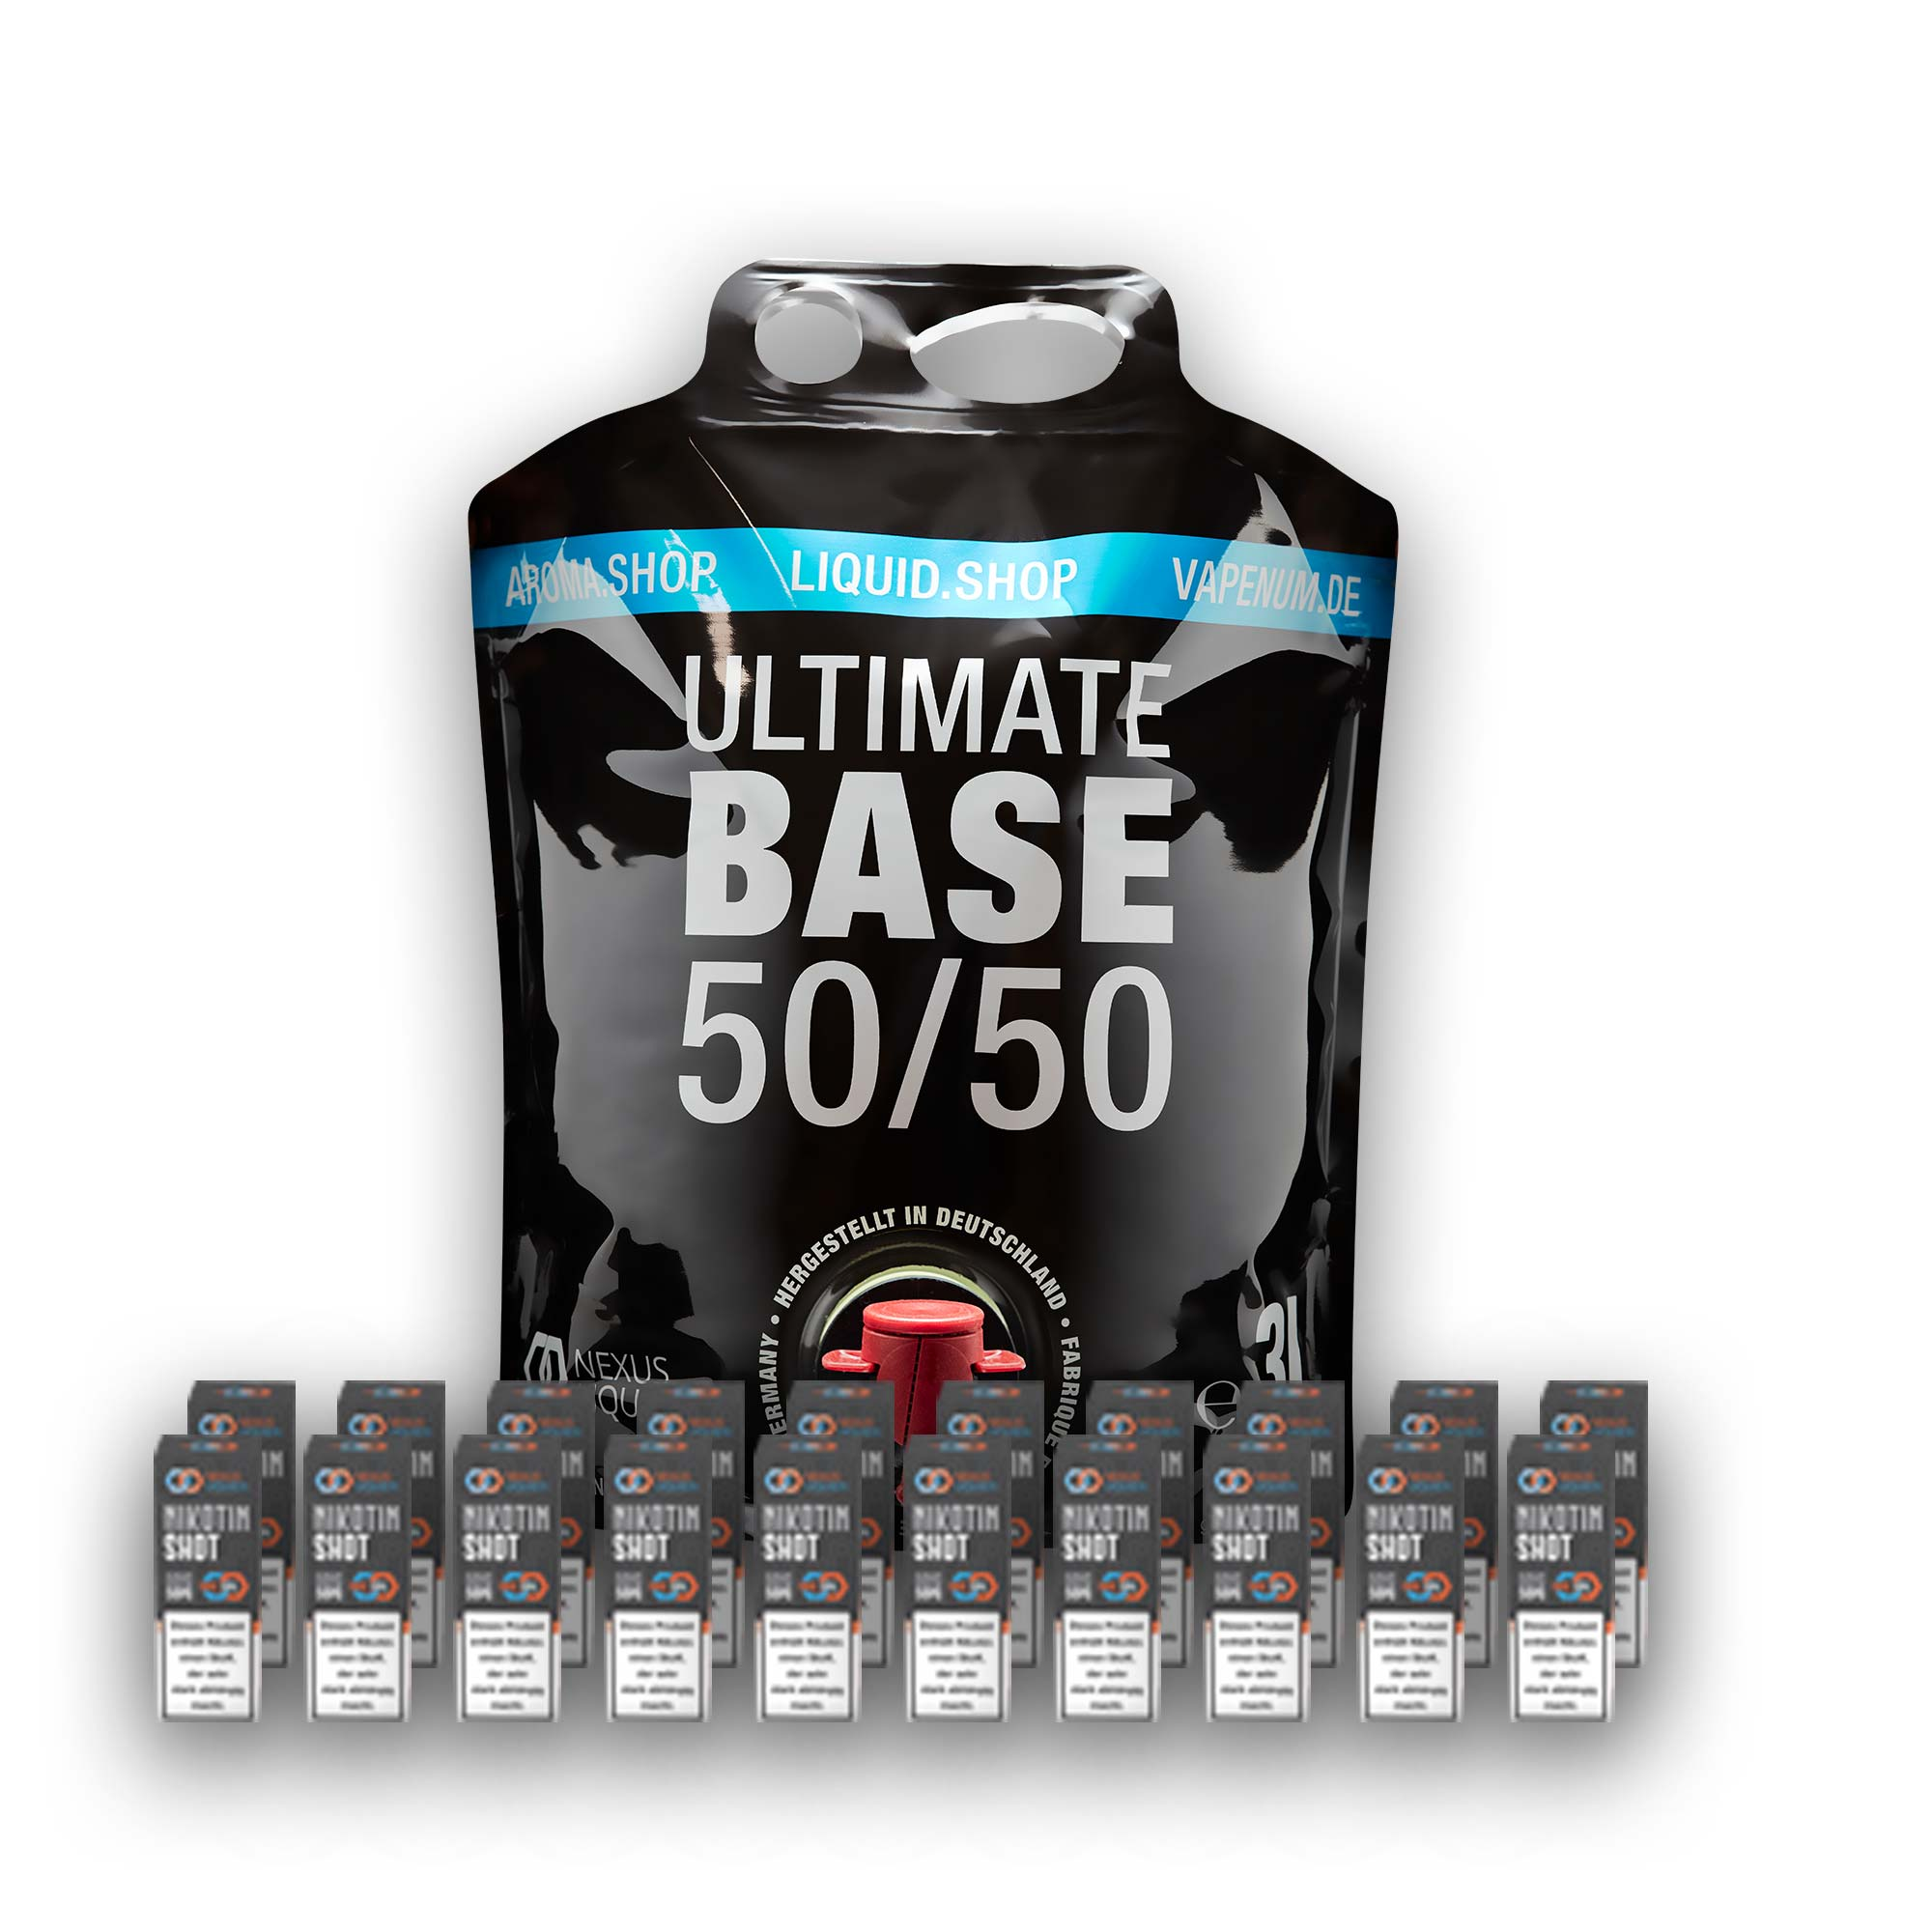 3L Ultimate Base (50/50) inklusive 20 Nik Shots 18mg